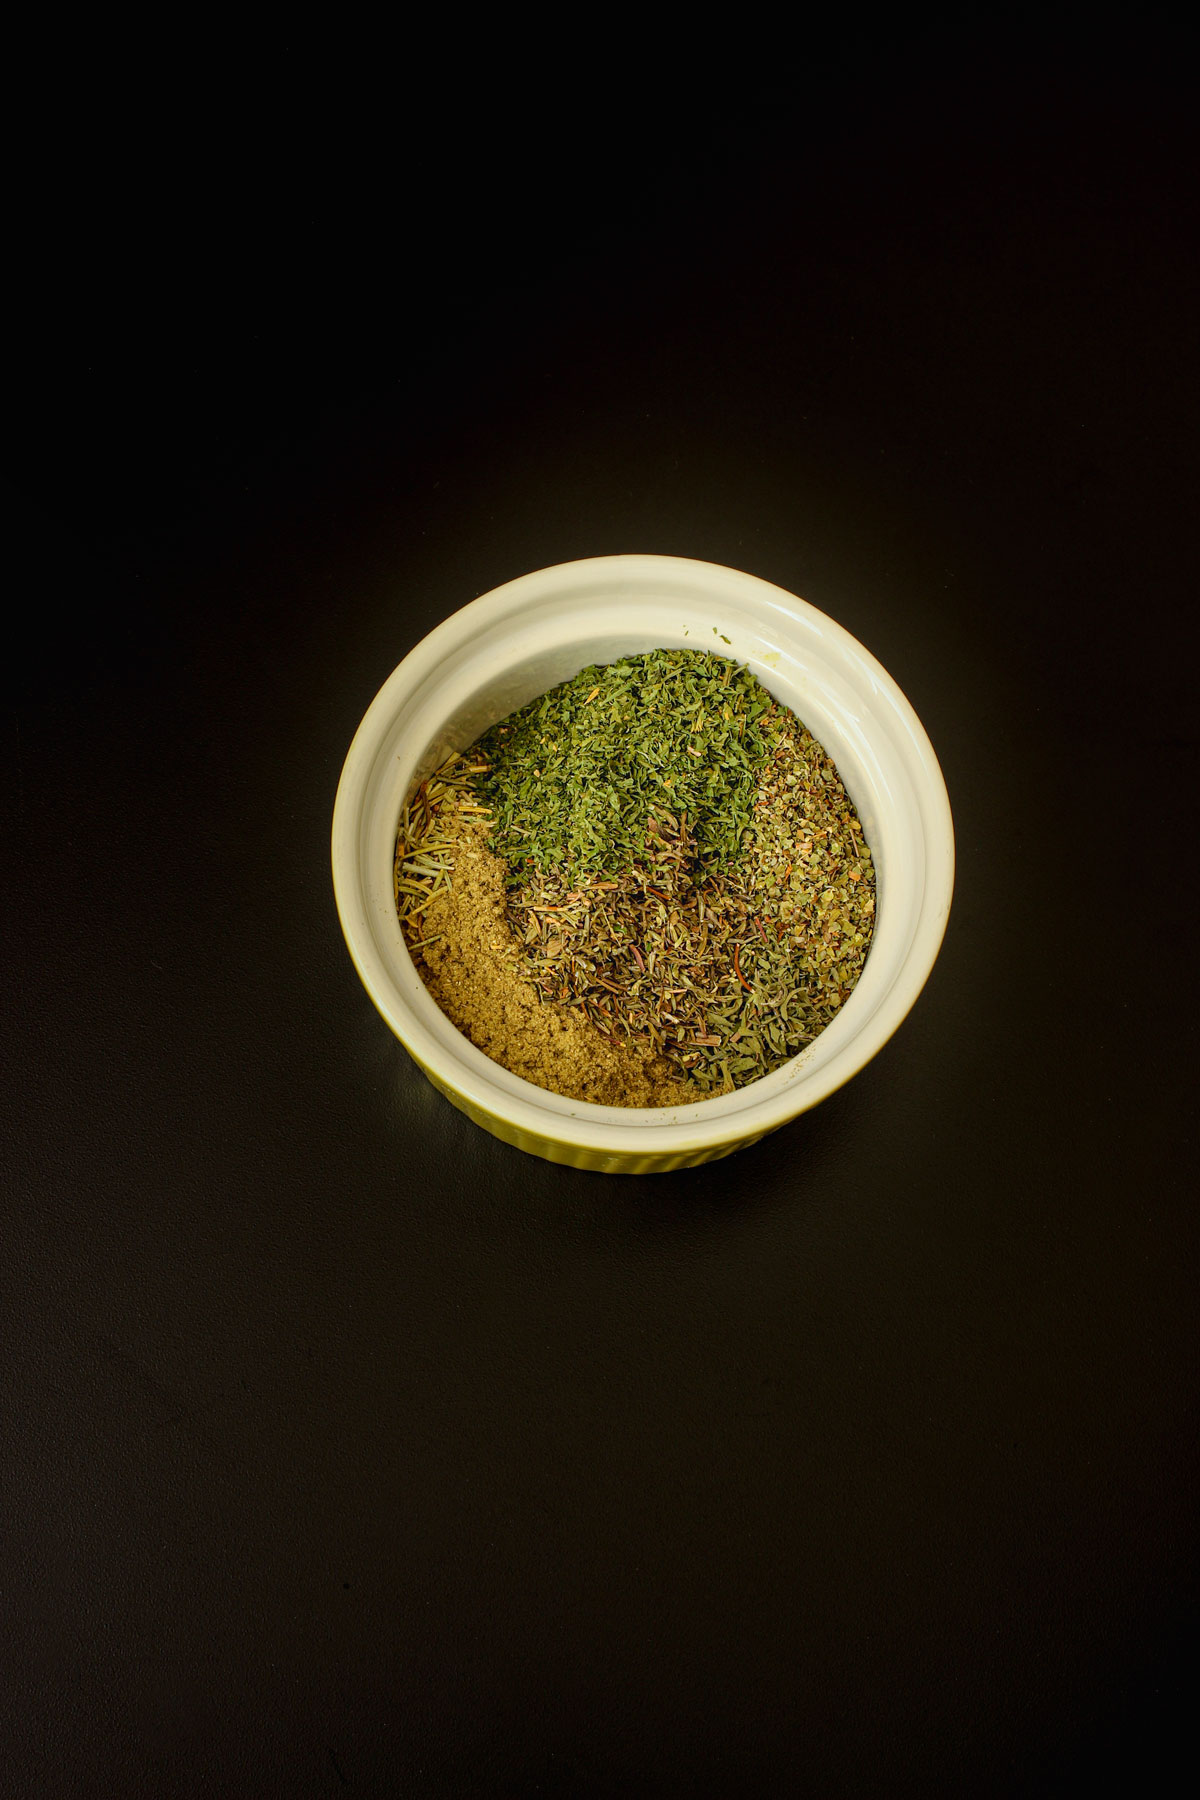 Italian herbs placed in small bowl.